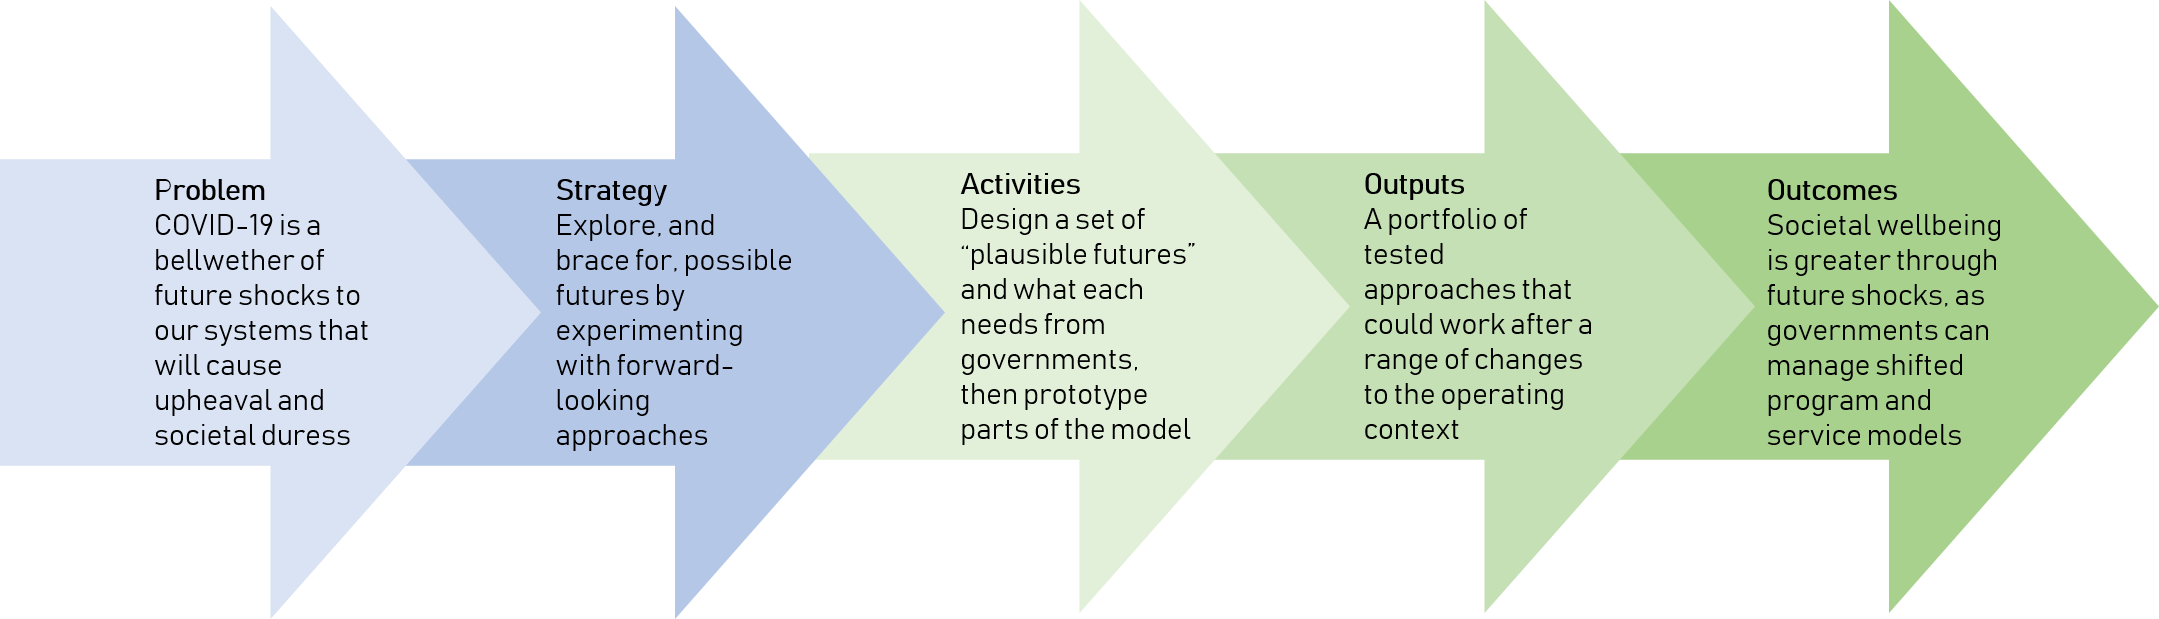 "An example theory of change: Problem: COVID-19 is a bellwether of future shocks to our systems that will cause upheaval and societal duress Strategy: Explore, and brace for, possible futures by experimenting with forward-looking approaches Activities: Design a set of ""plausible futures"" and what each needs from governments, then prototype parts of the model Outputs: A portfolio of tested approaches that could work after a range of changes to the operating context Outcomes: Societal wellbeing is greater through future shocks, as governments can manage shifted program and service models"